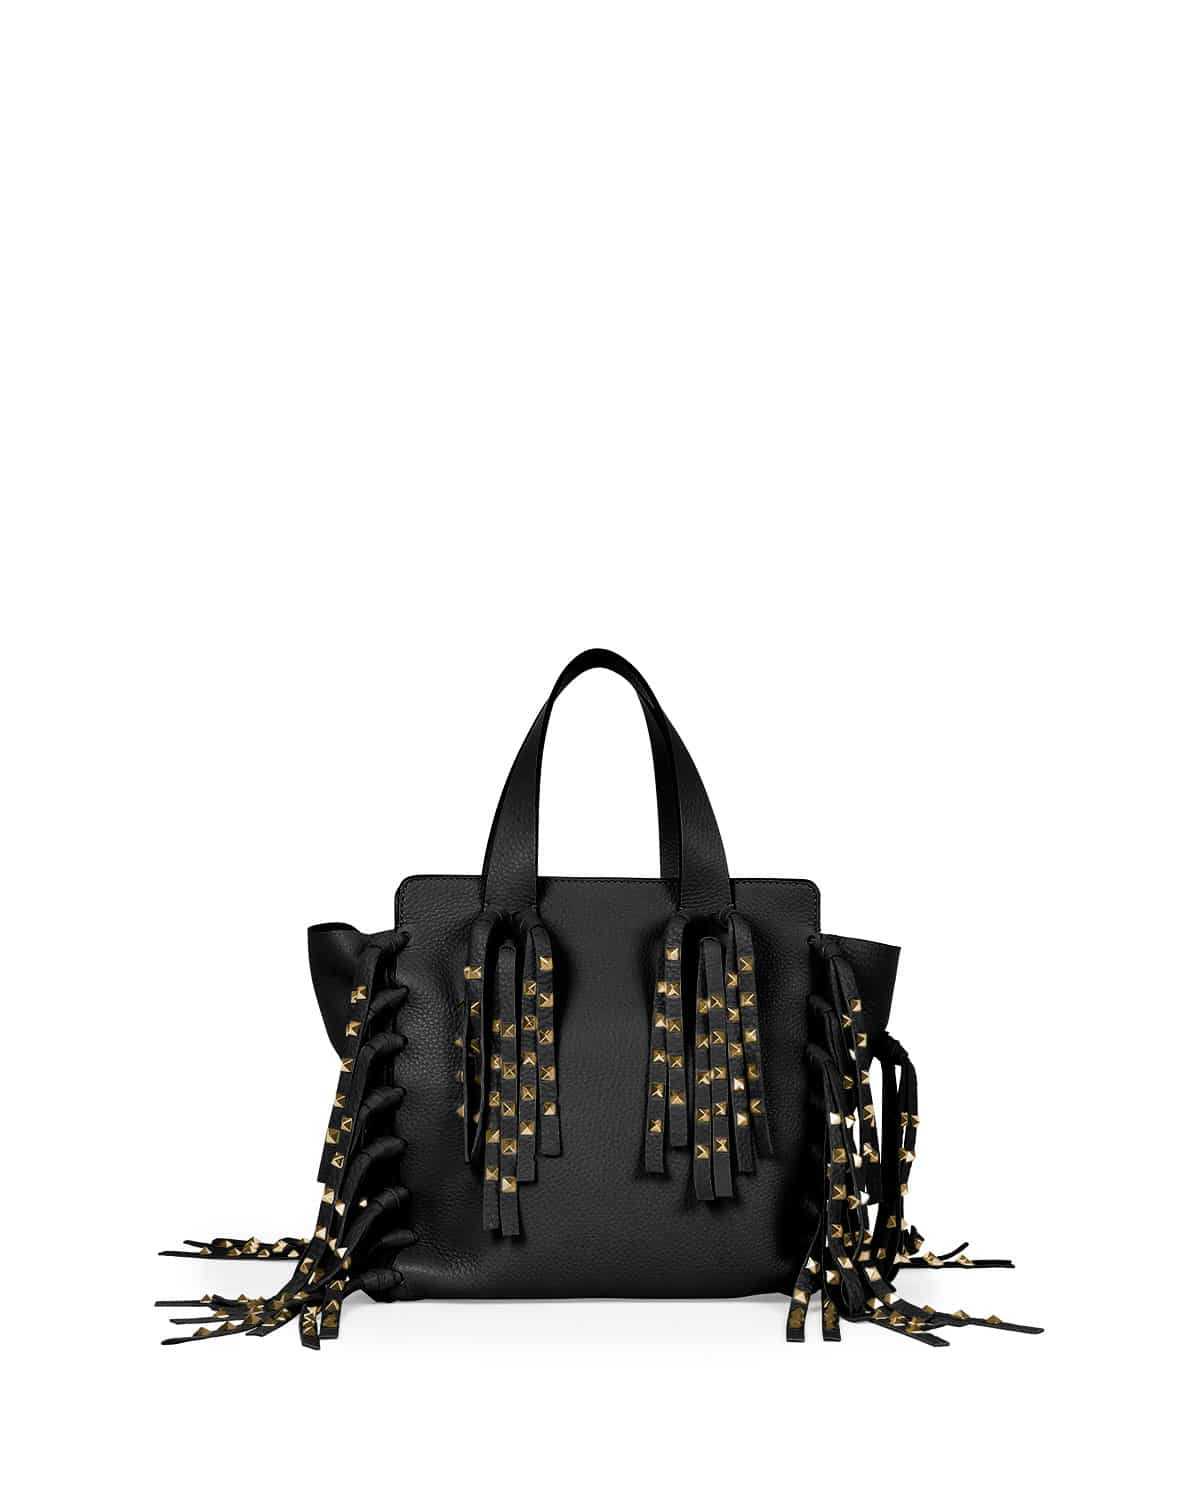 Valentino Resort 2016 Bag Collection Featuring Superheroes Spotted Shopper Tote Black Mc C Rockee Studded Fringe Micro